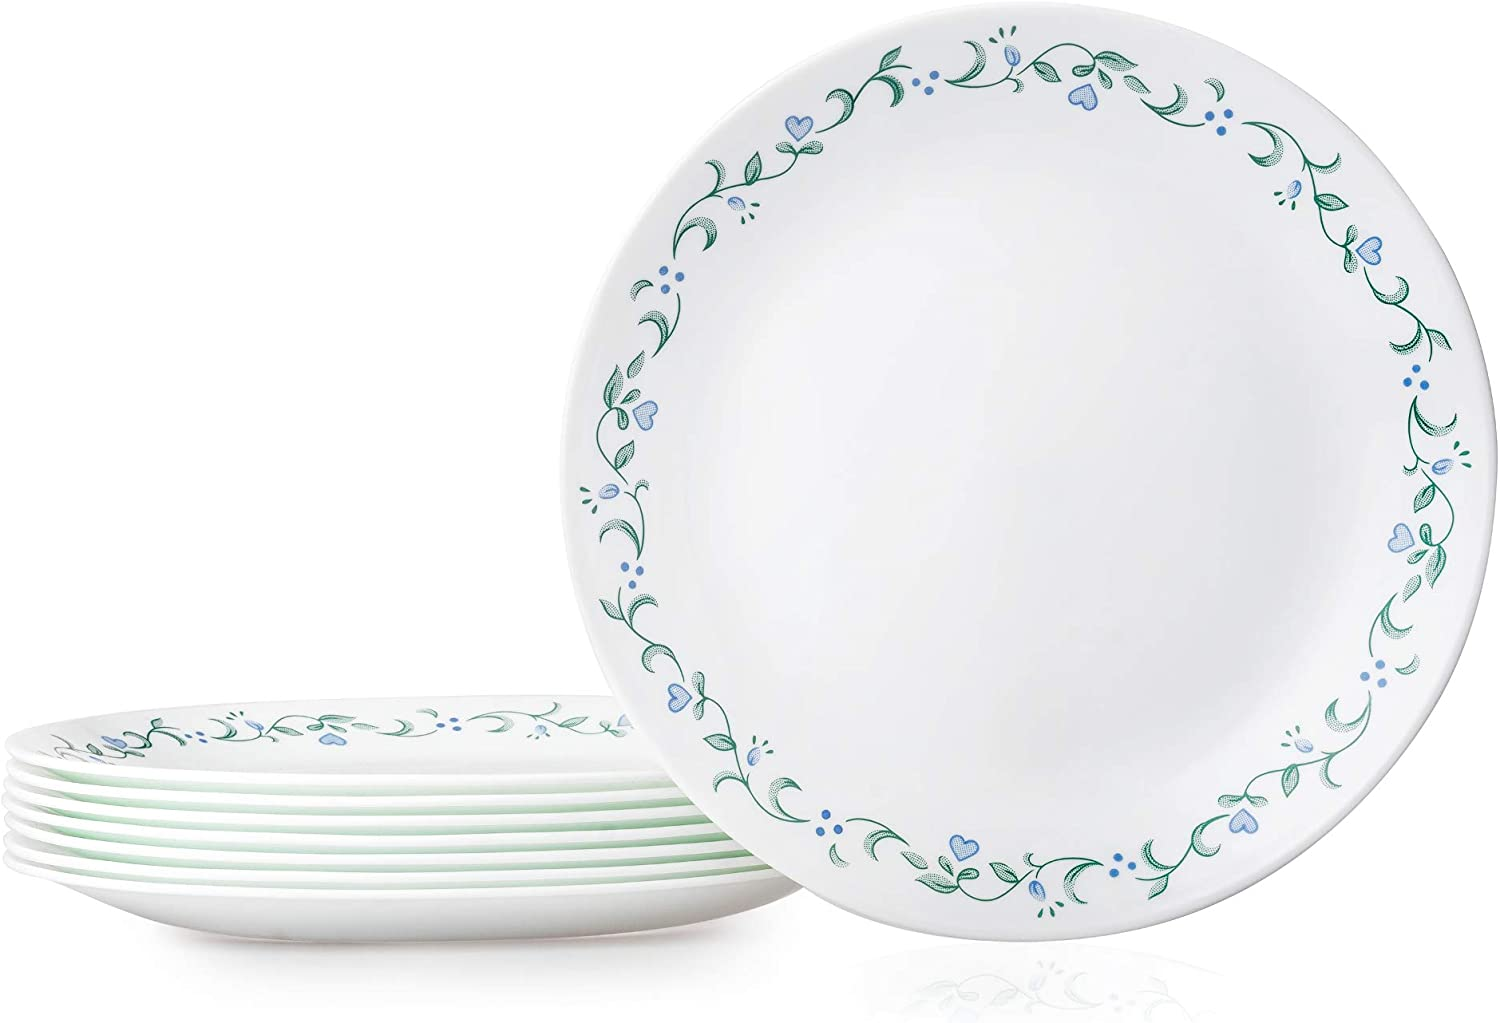 Corelle Country Cottage Max 73% OFF 40% OFF Cheap Sale Plates 8-Piece Dinner